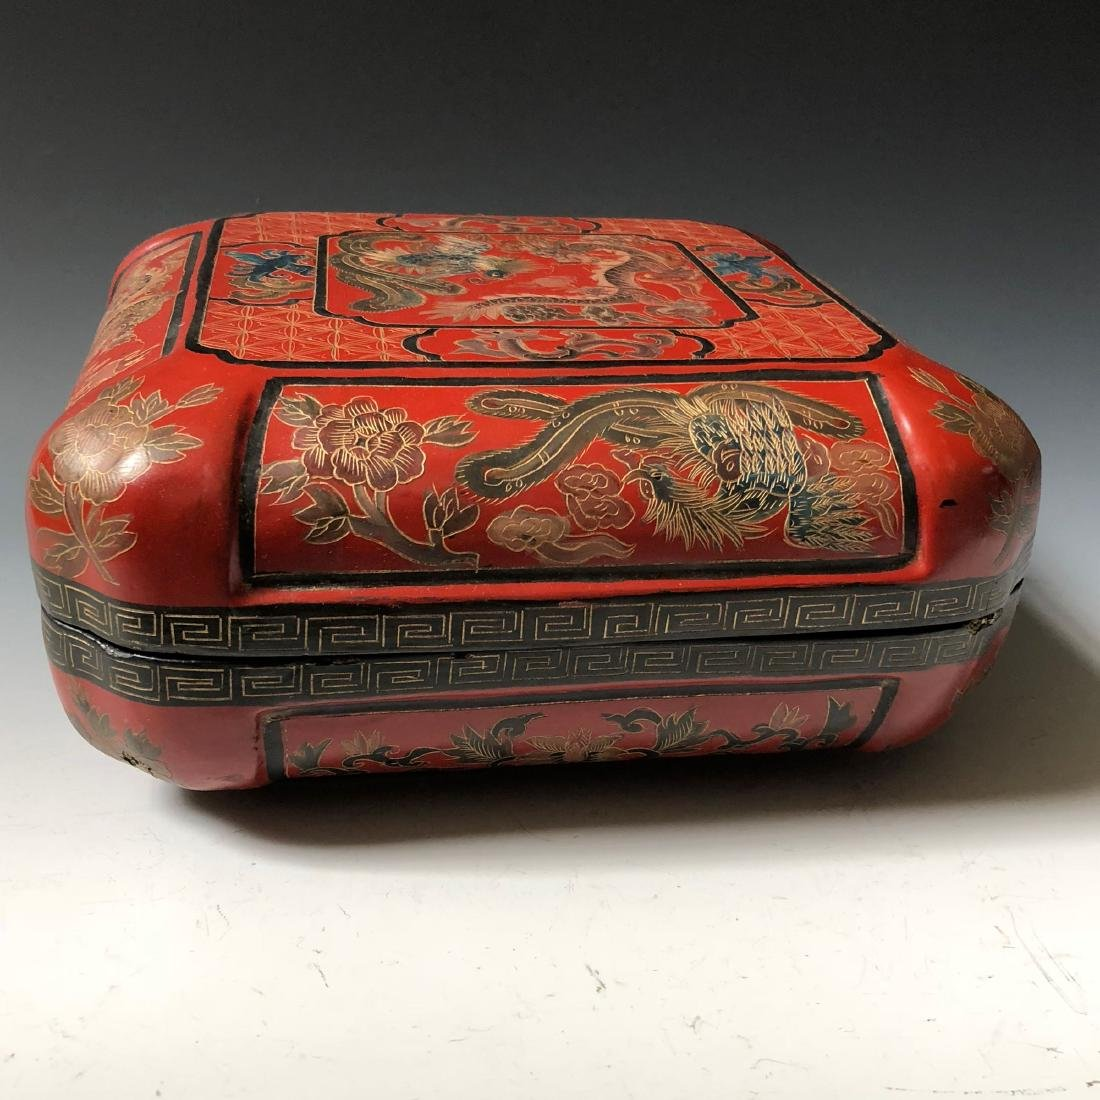 A BEAUTIFUL CHINESE ANTIQUE RED LACQUER BOX